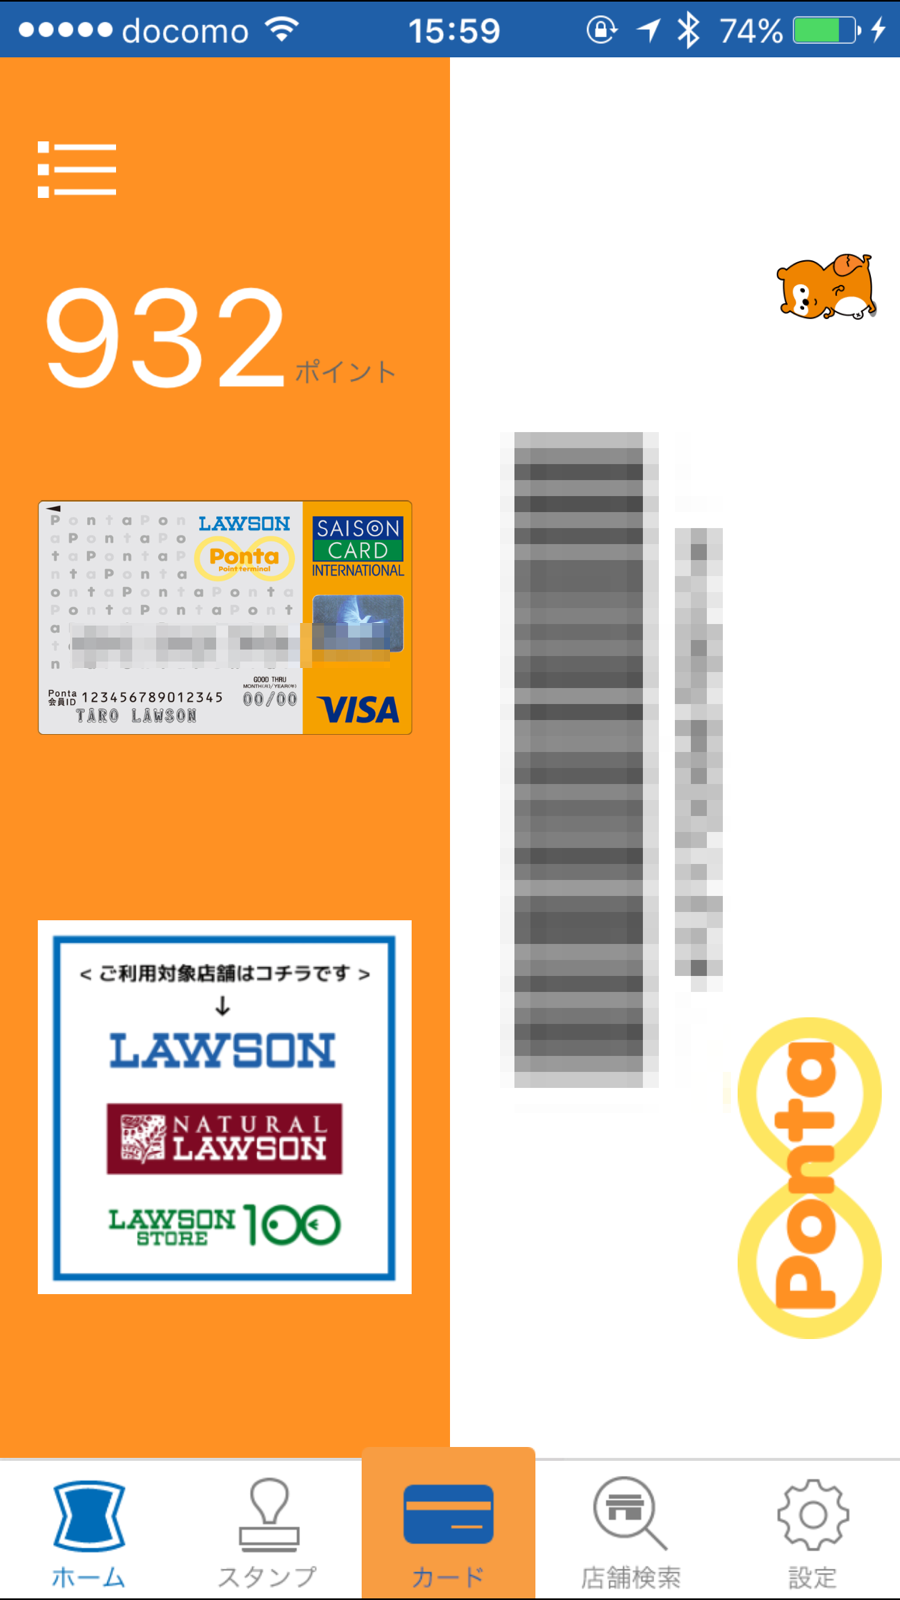 Lawson ponta card digital 1190